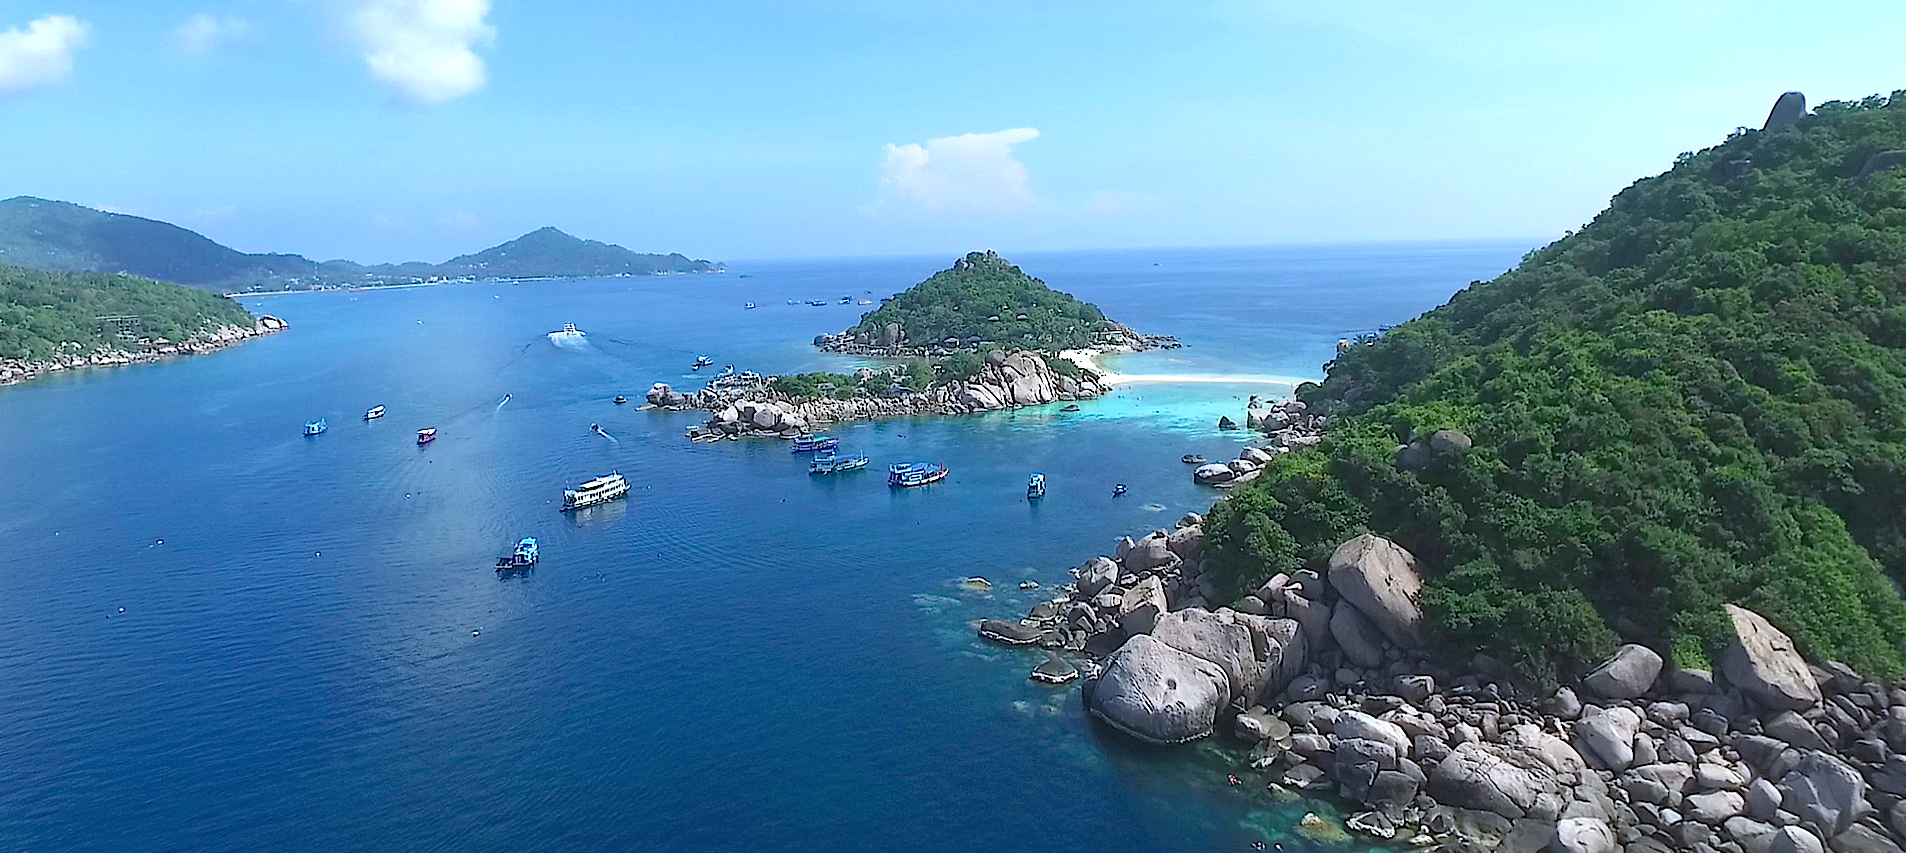 idc-koh-tao-crystal-dive-koh-tao-padi-diving-courses